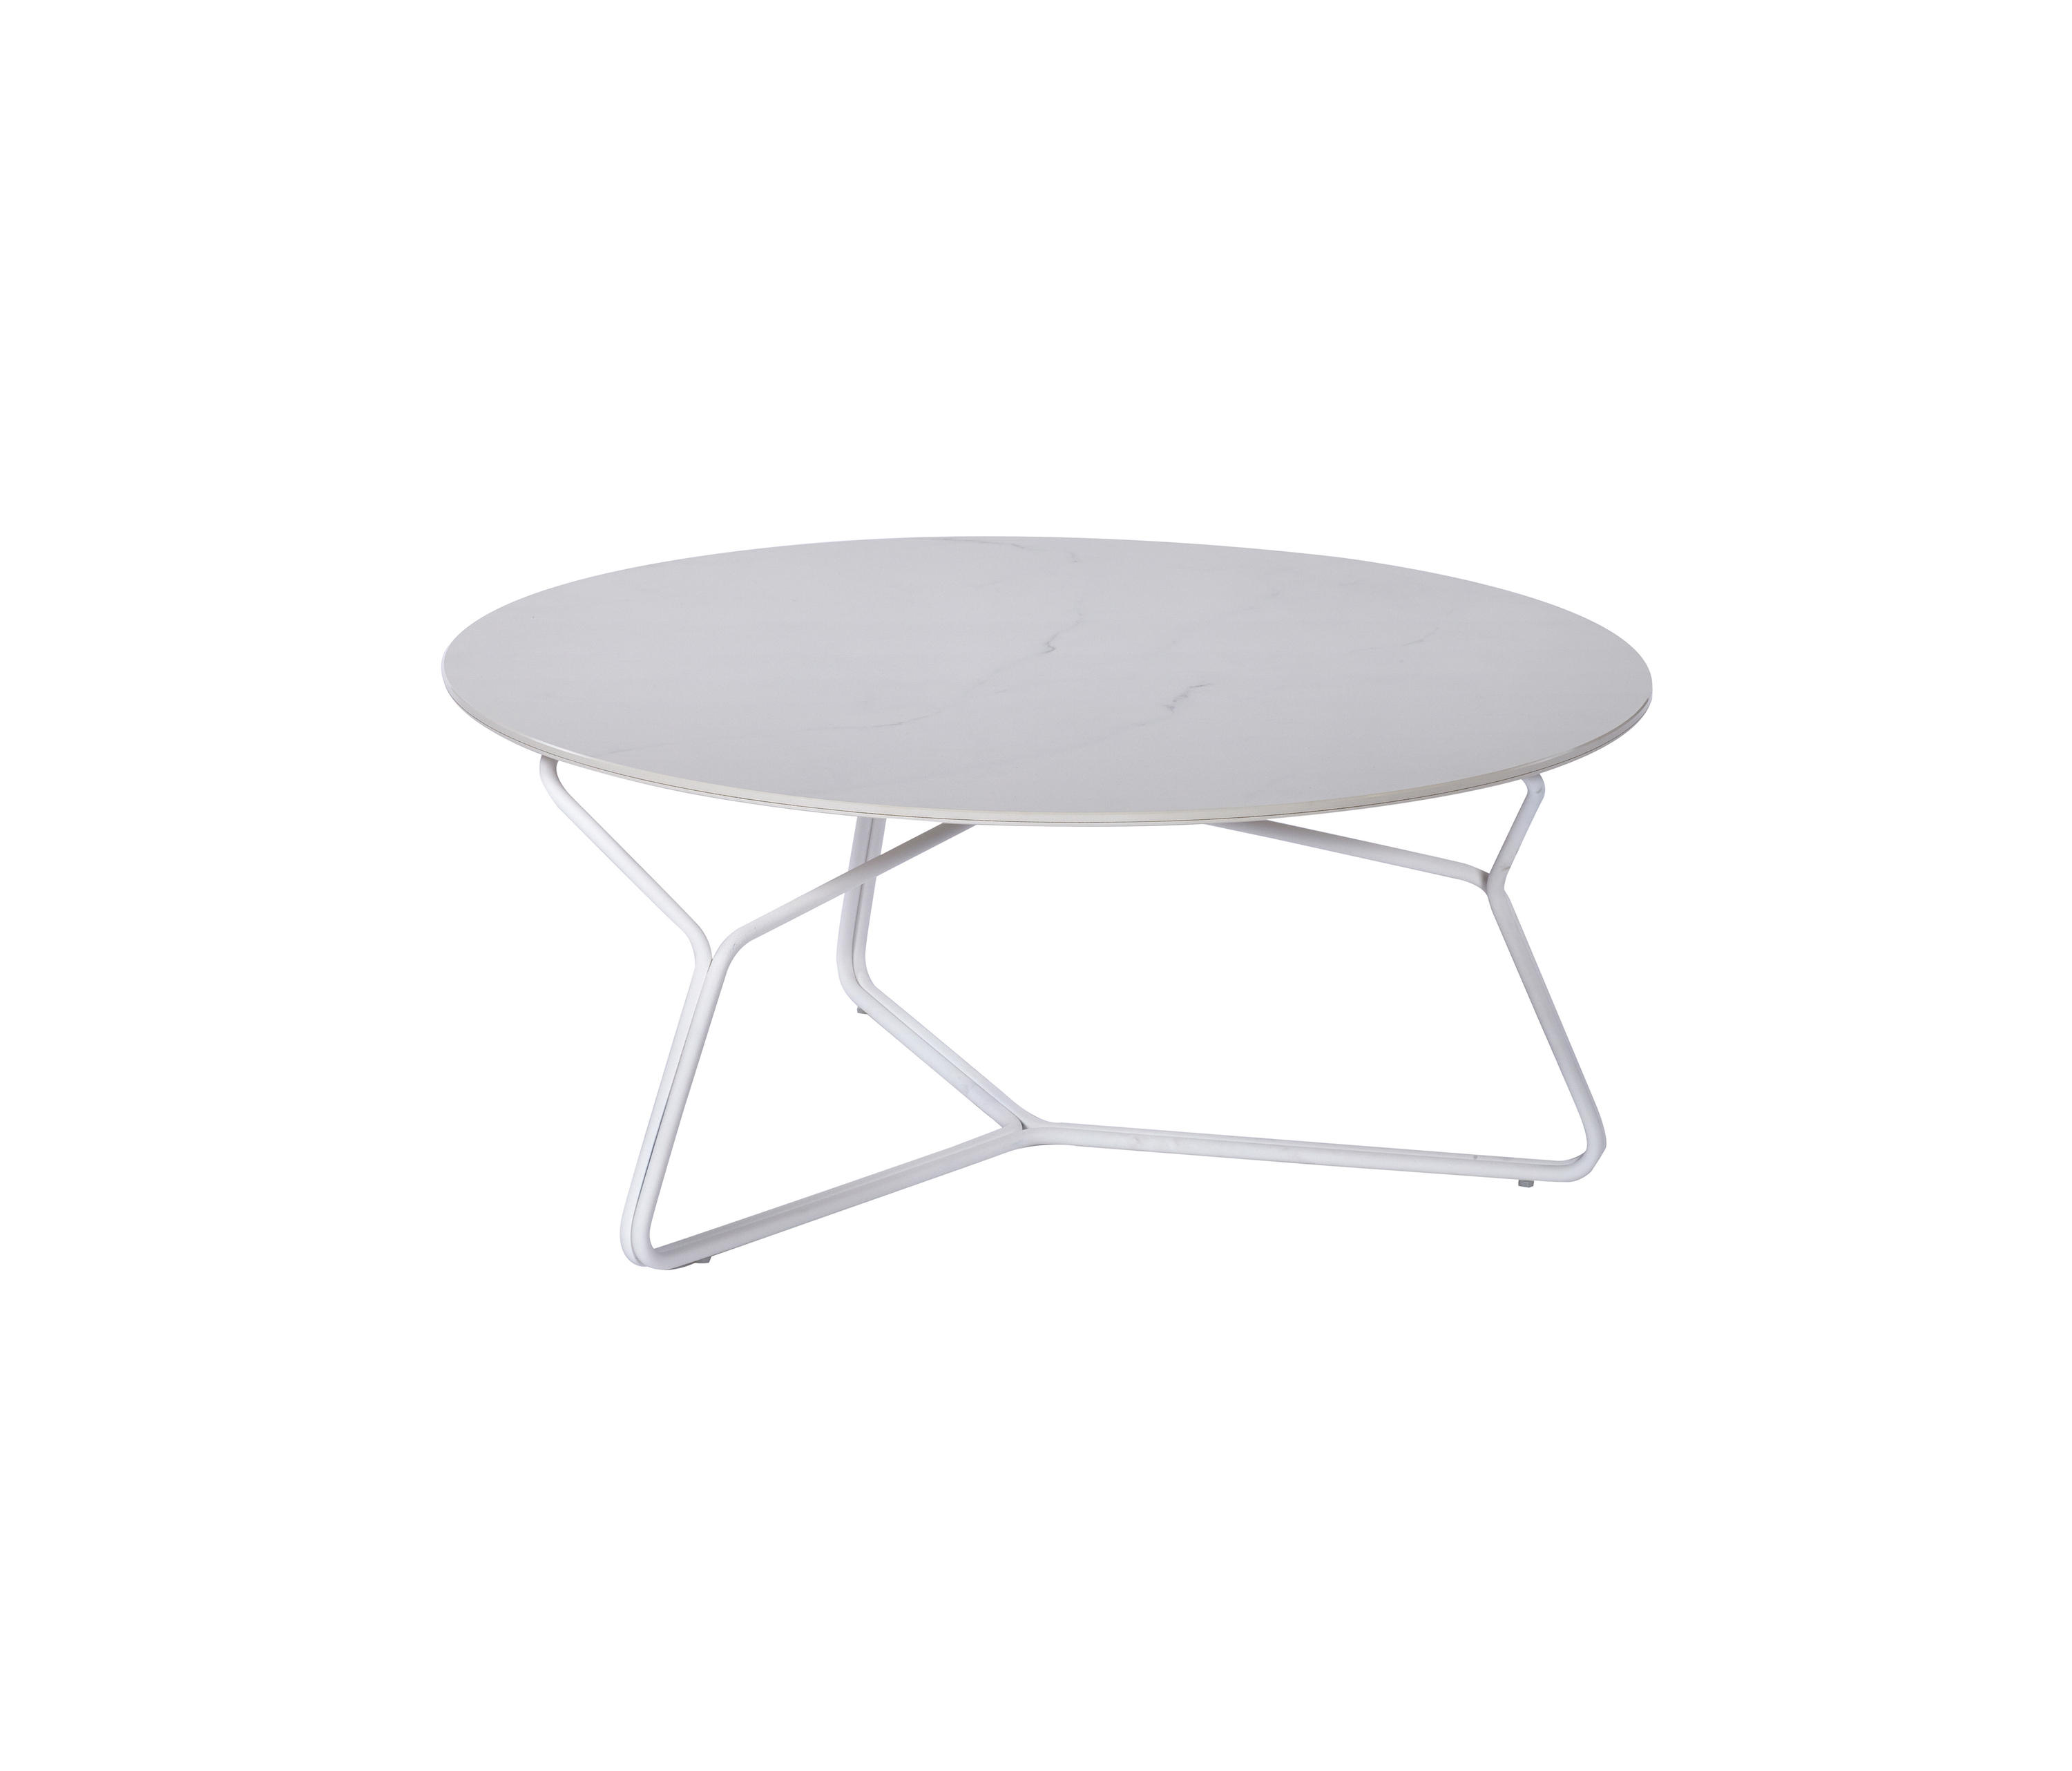 SERAC COFFEE TABLE CERAMIC Coffee tables from Oasiq Architonic